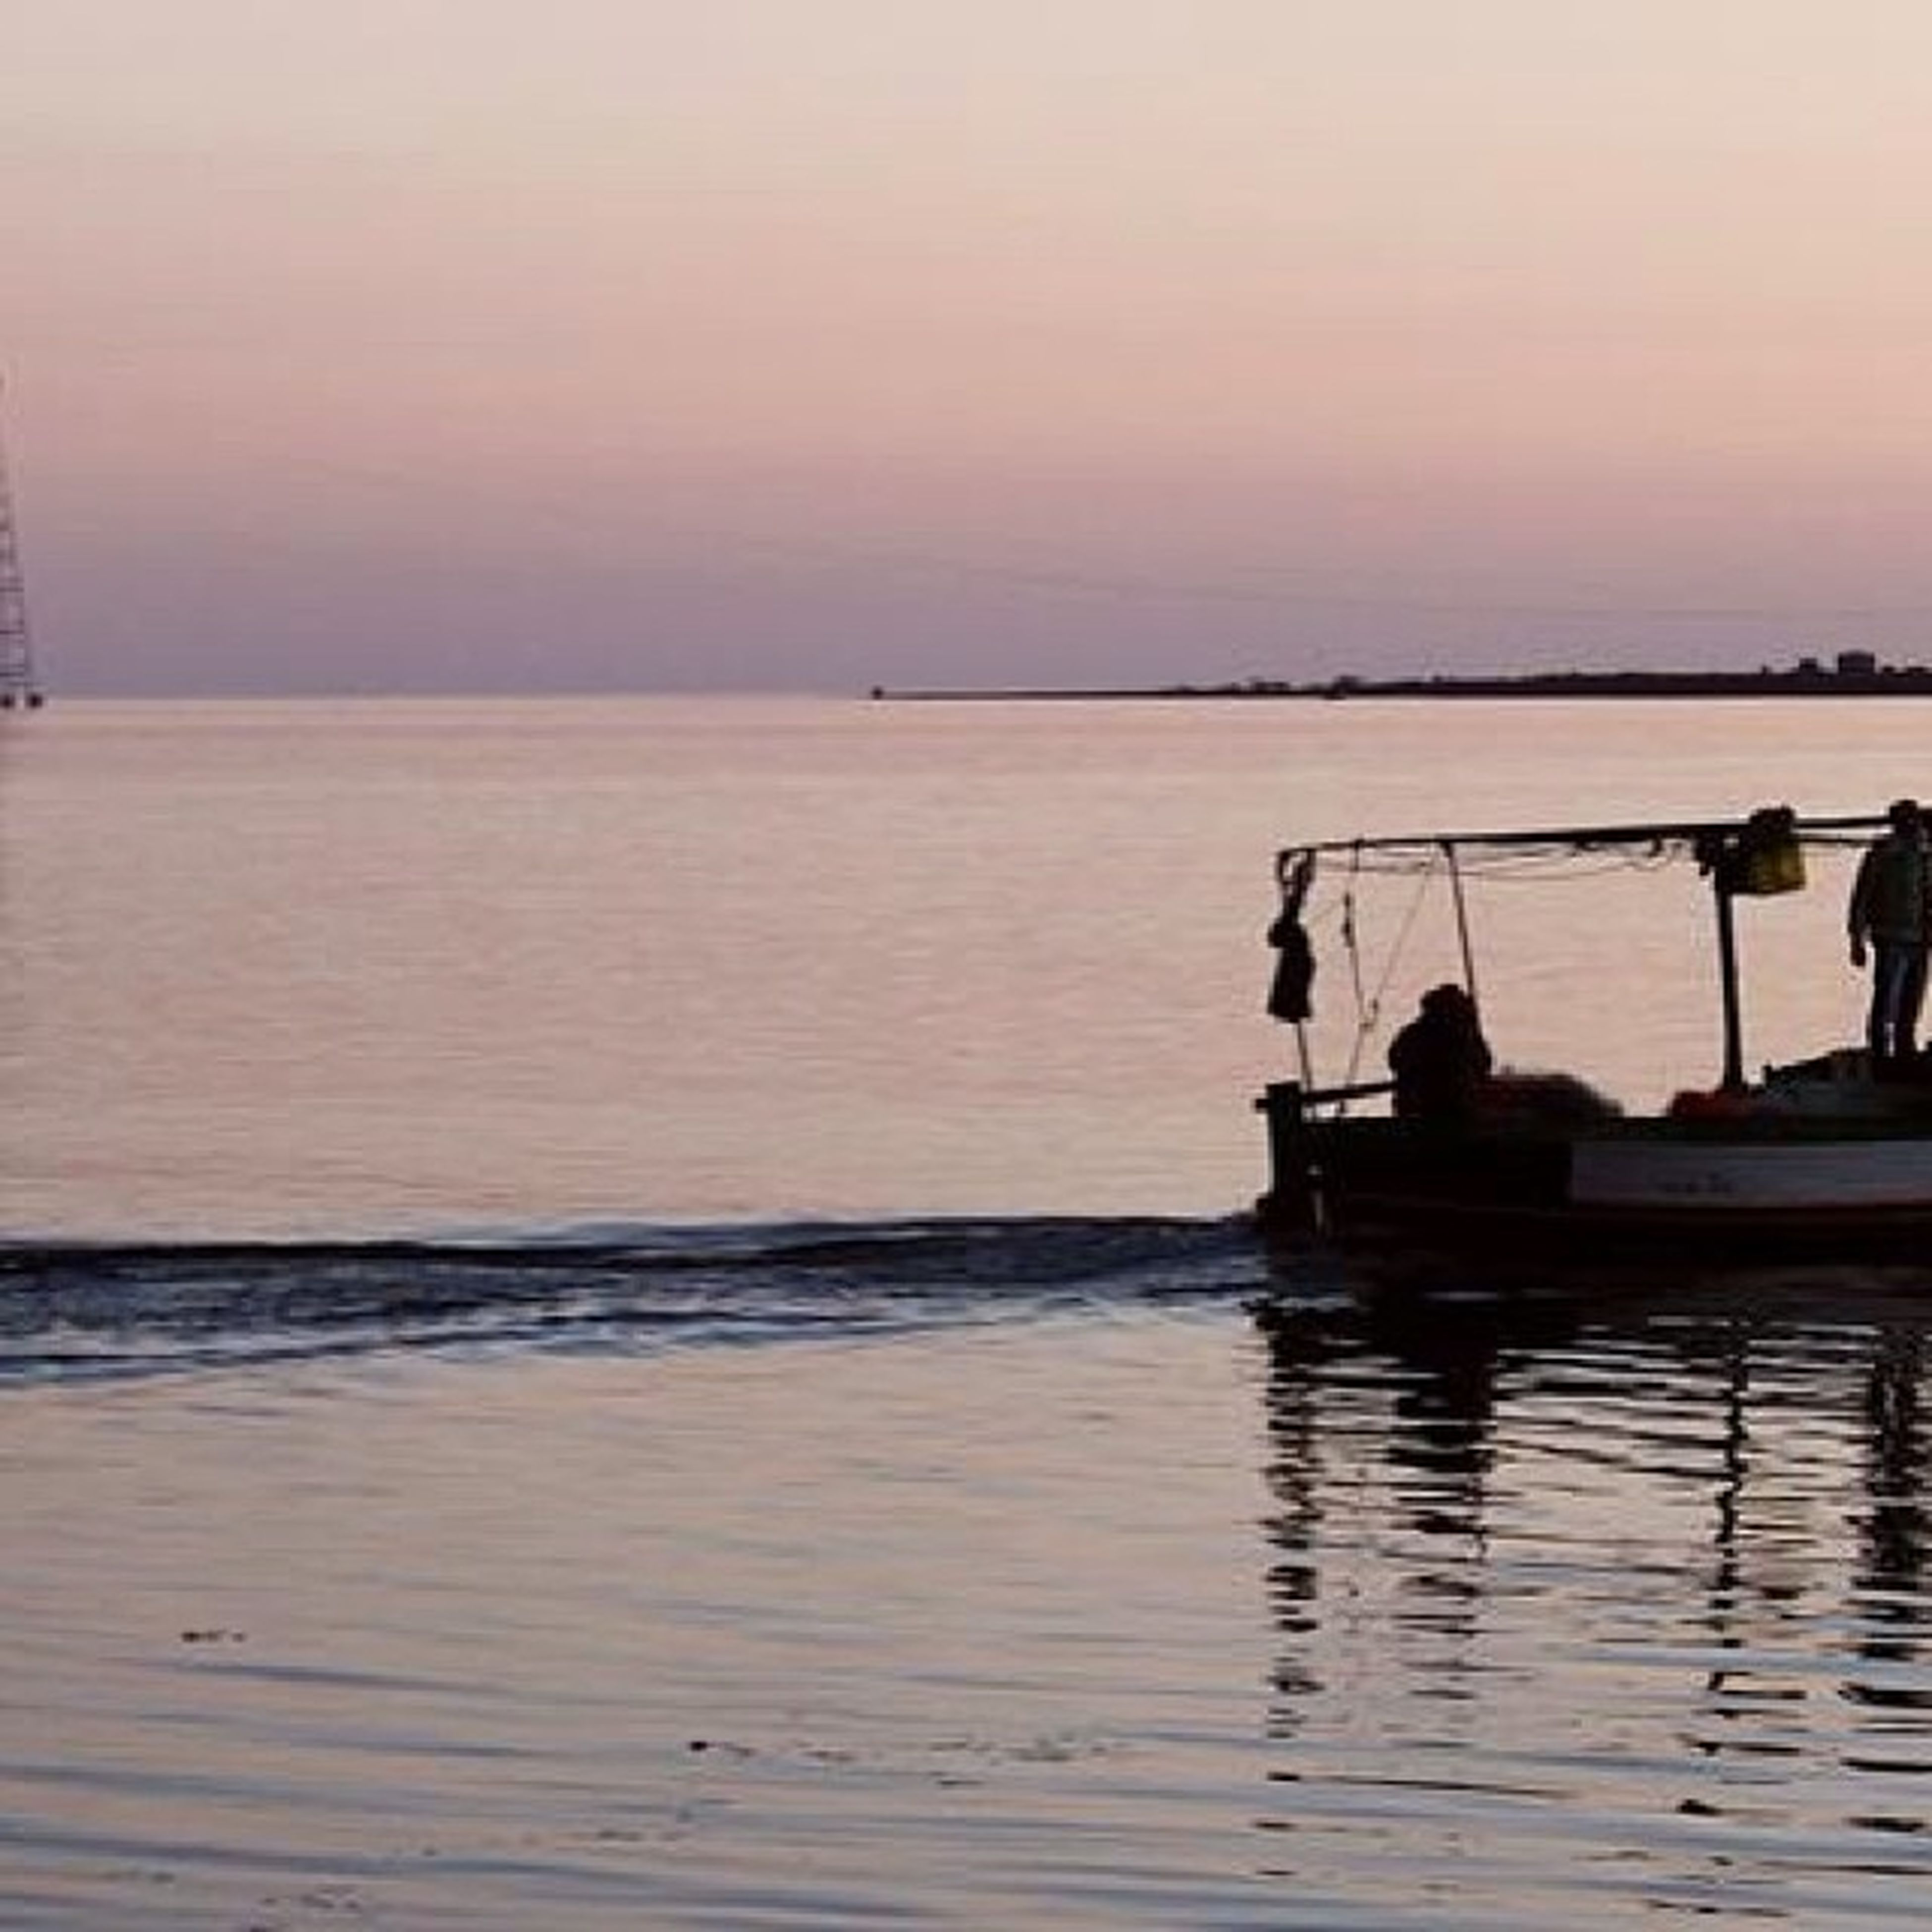 water, sunset, nautical vessel, transportation, sea, boat, silhouette, mode of transport, tranquil scene, horizon over water, tranquility, scenics, reflection, beauty in nature, men, waterfront, sky, nature, idyllic